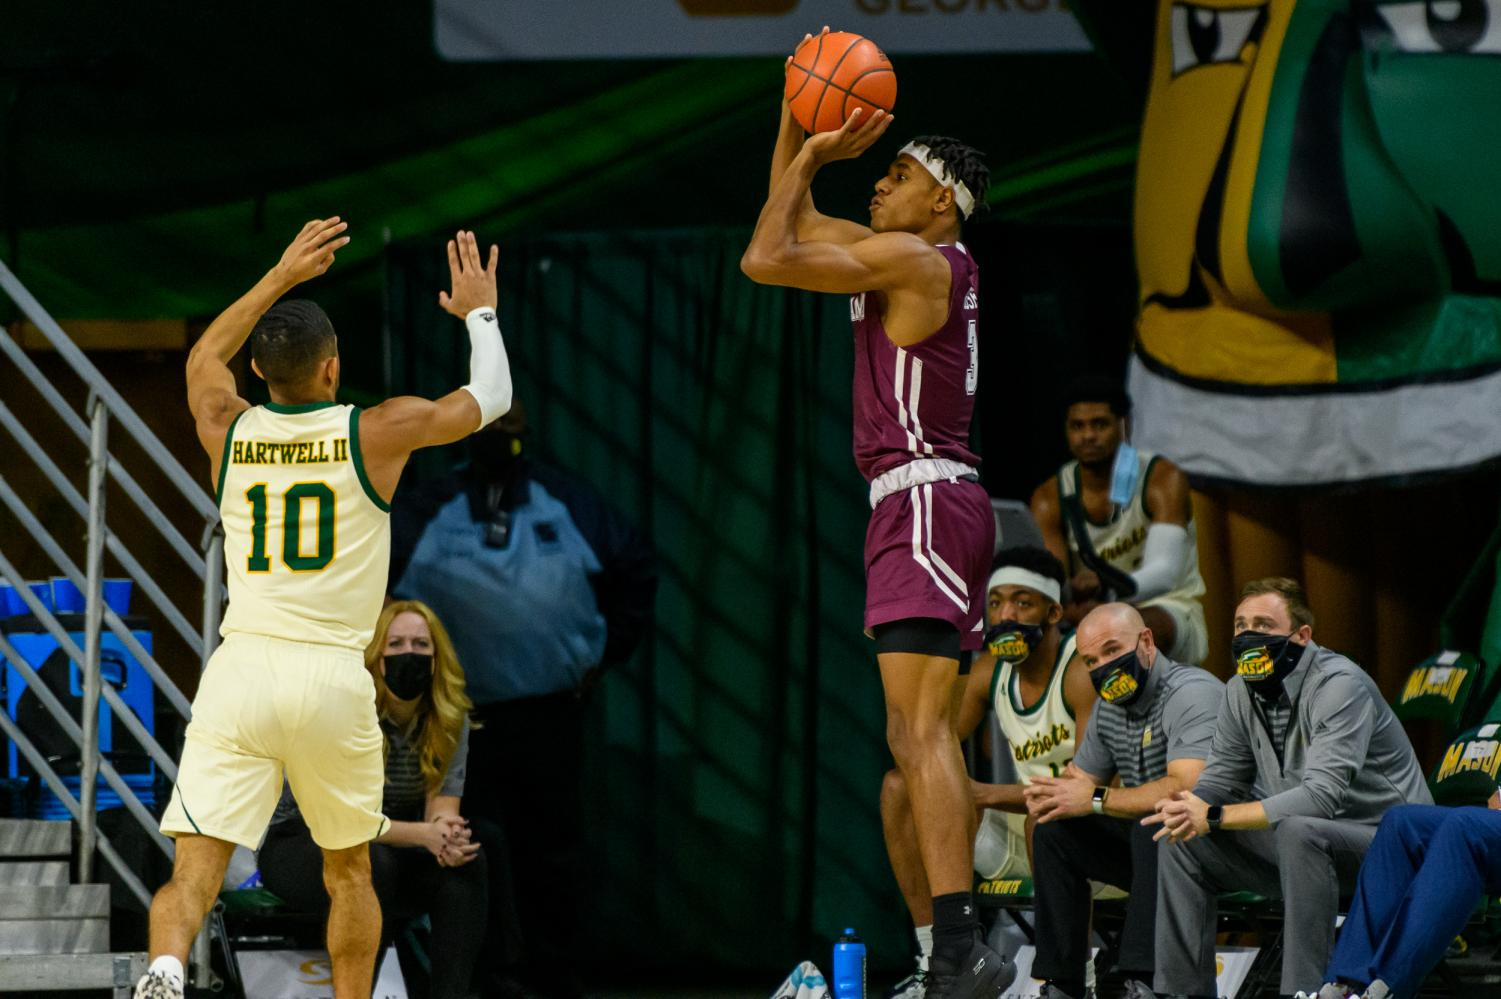 george mason player on the left and a fordham player making a basket on the right